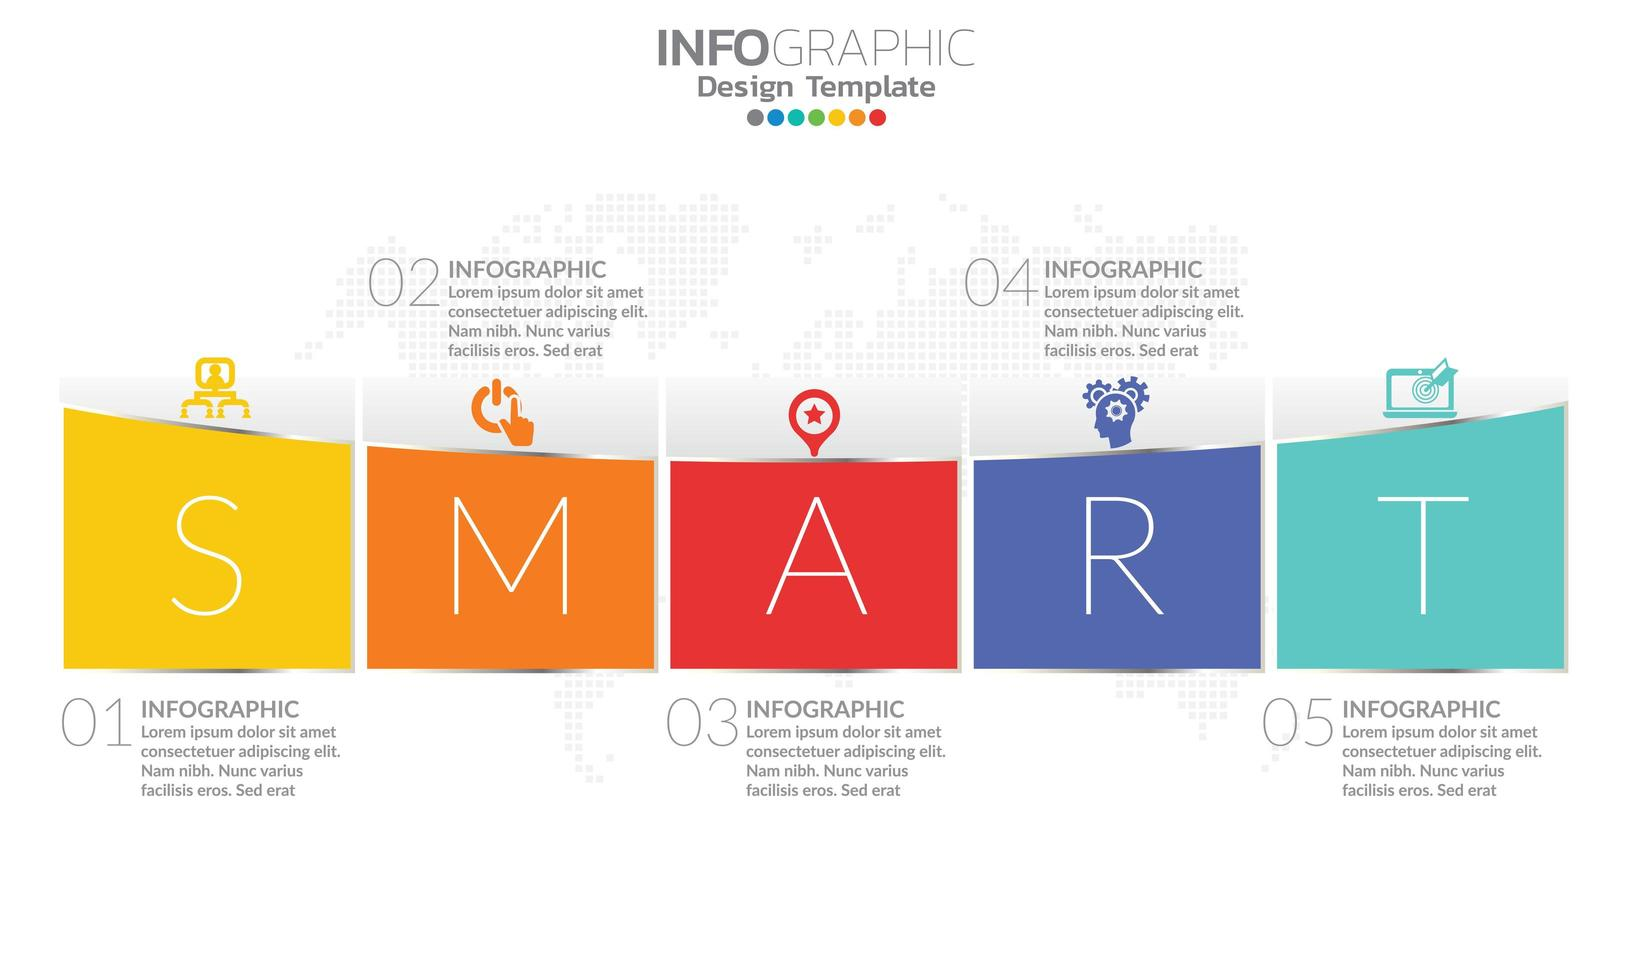 Timeline infographic template with 5 elements vector